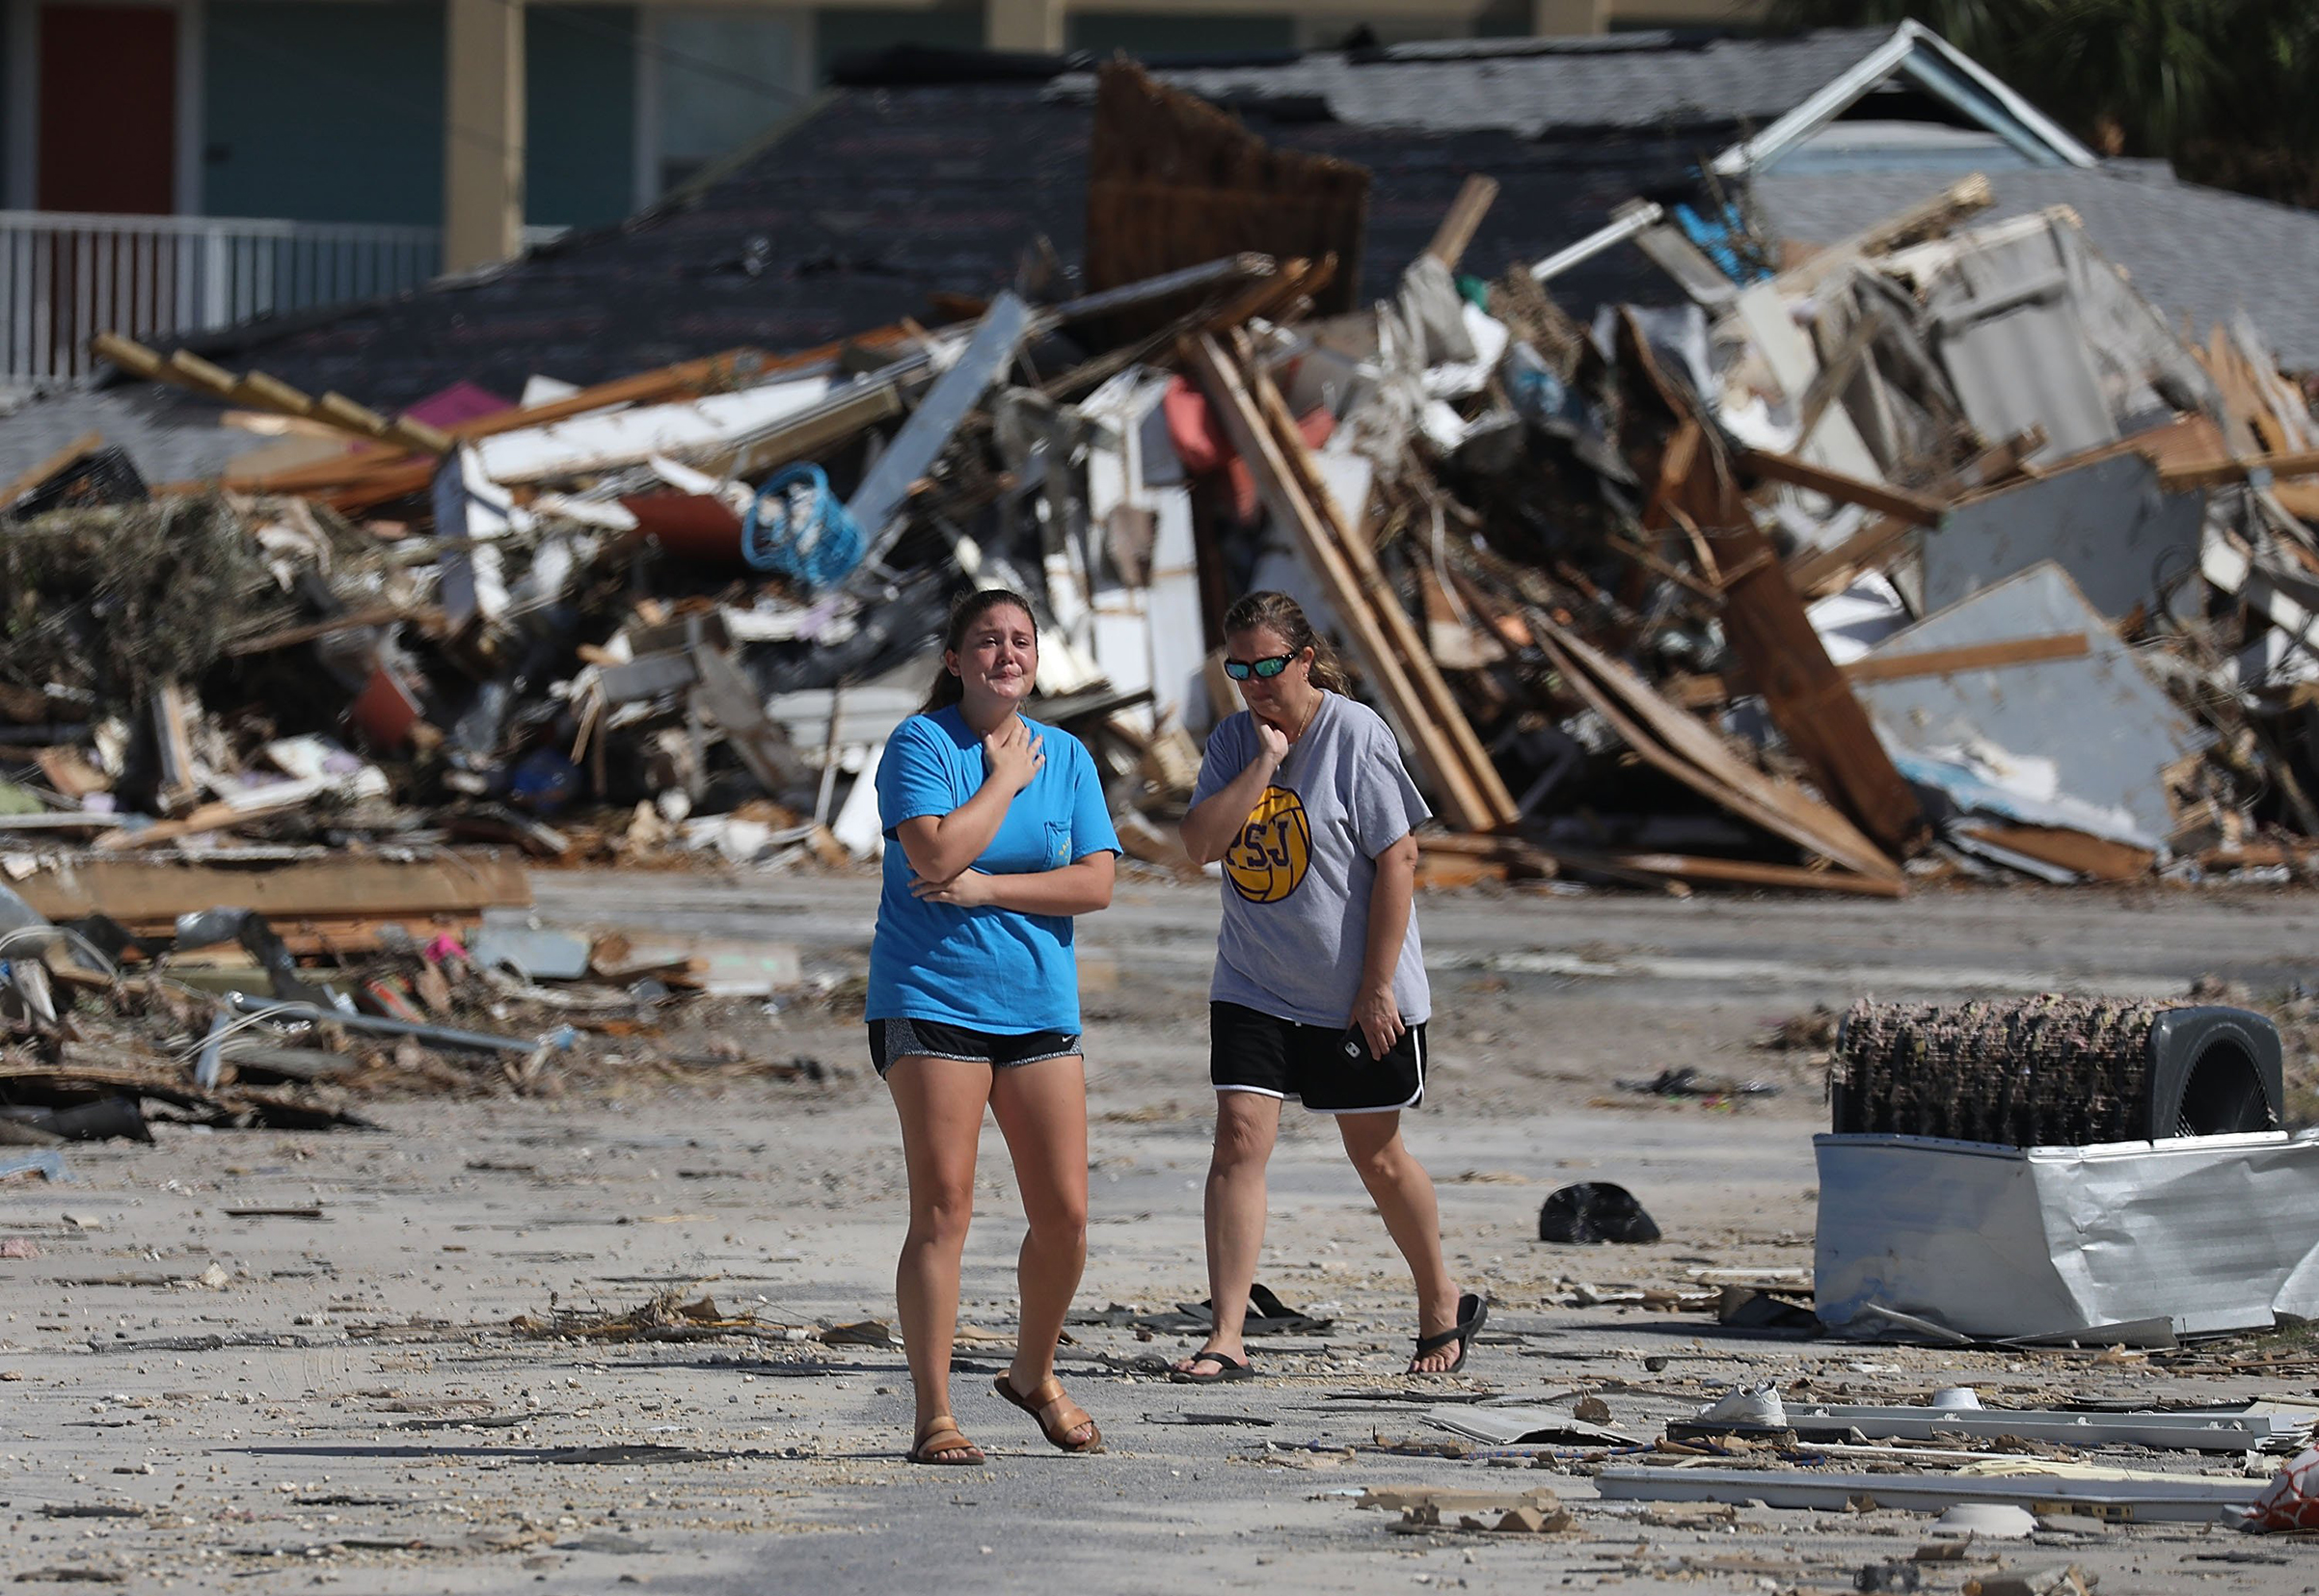 Elizabeth Hanson, right, and her daughter, look at their home that was heavily damaged when Hurricane Michael passed through the area on Oct. 11, 2018 in Mexico Beach, Fla.